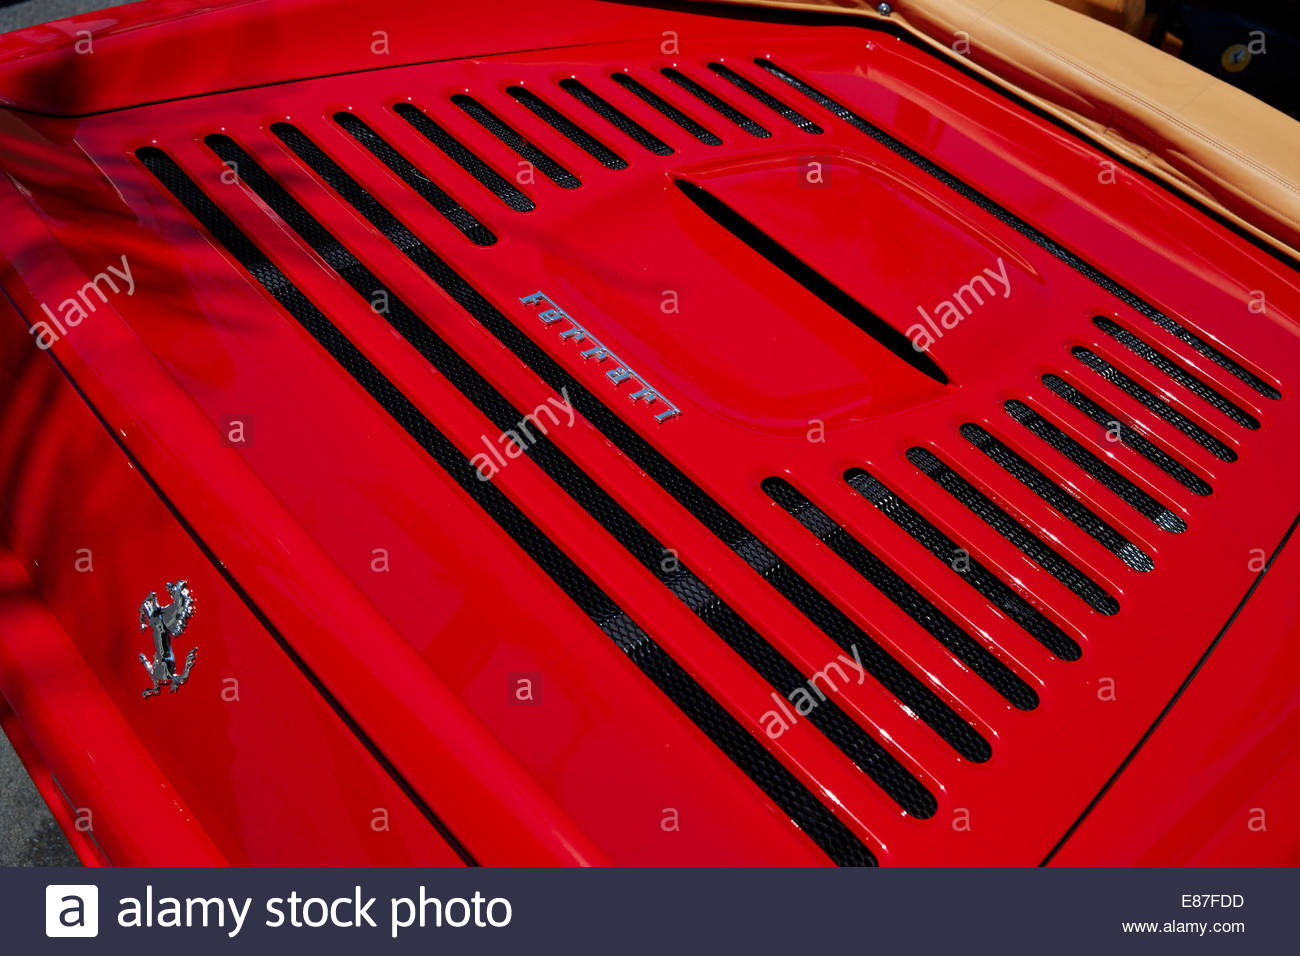 Chrome Ferrari badge on a bright red 355 engine cover - Stock Image